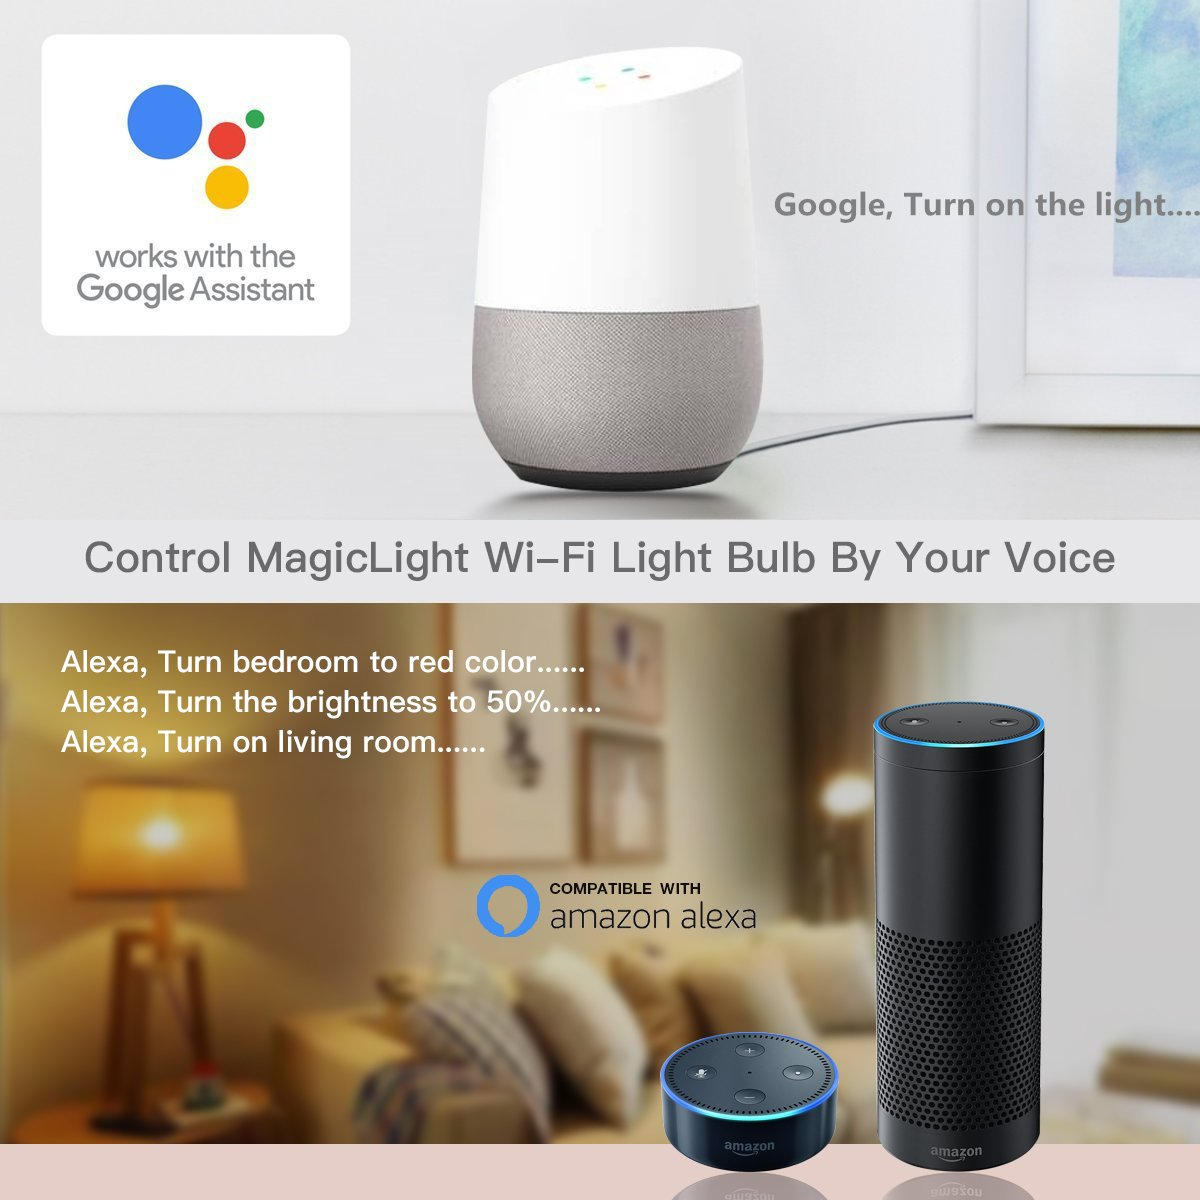 MagicLight WiFi Smart Light Bulb - Triangle Style - Dimmable Multicolored 60w Equivalent Sunset Sunrise Sleeping Night Lights - Compatible with Alexa & Google Home Assistant by MagicLight (Image #6)